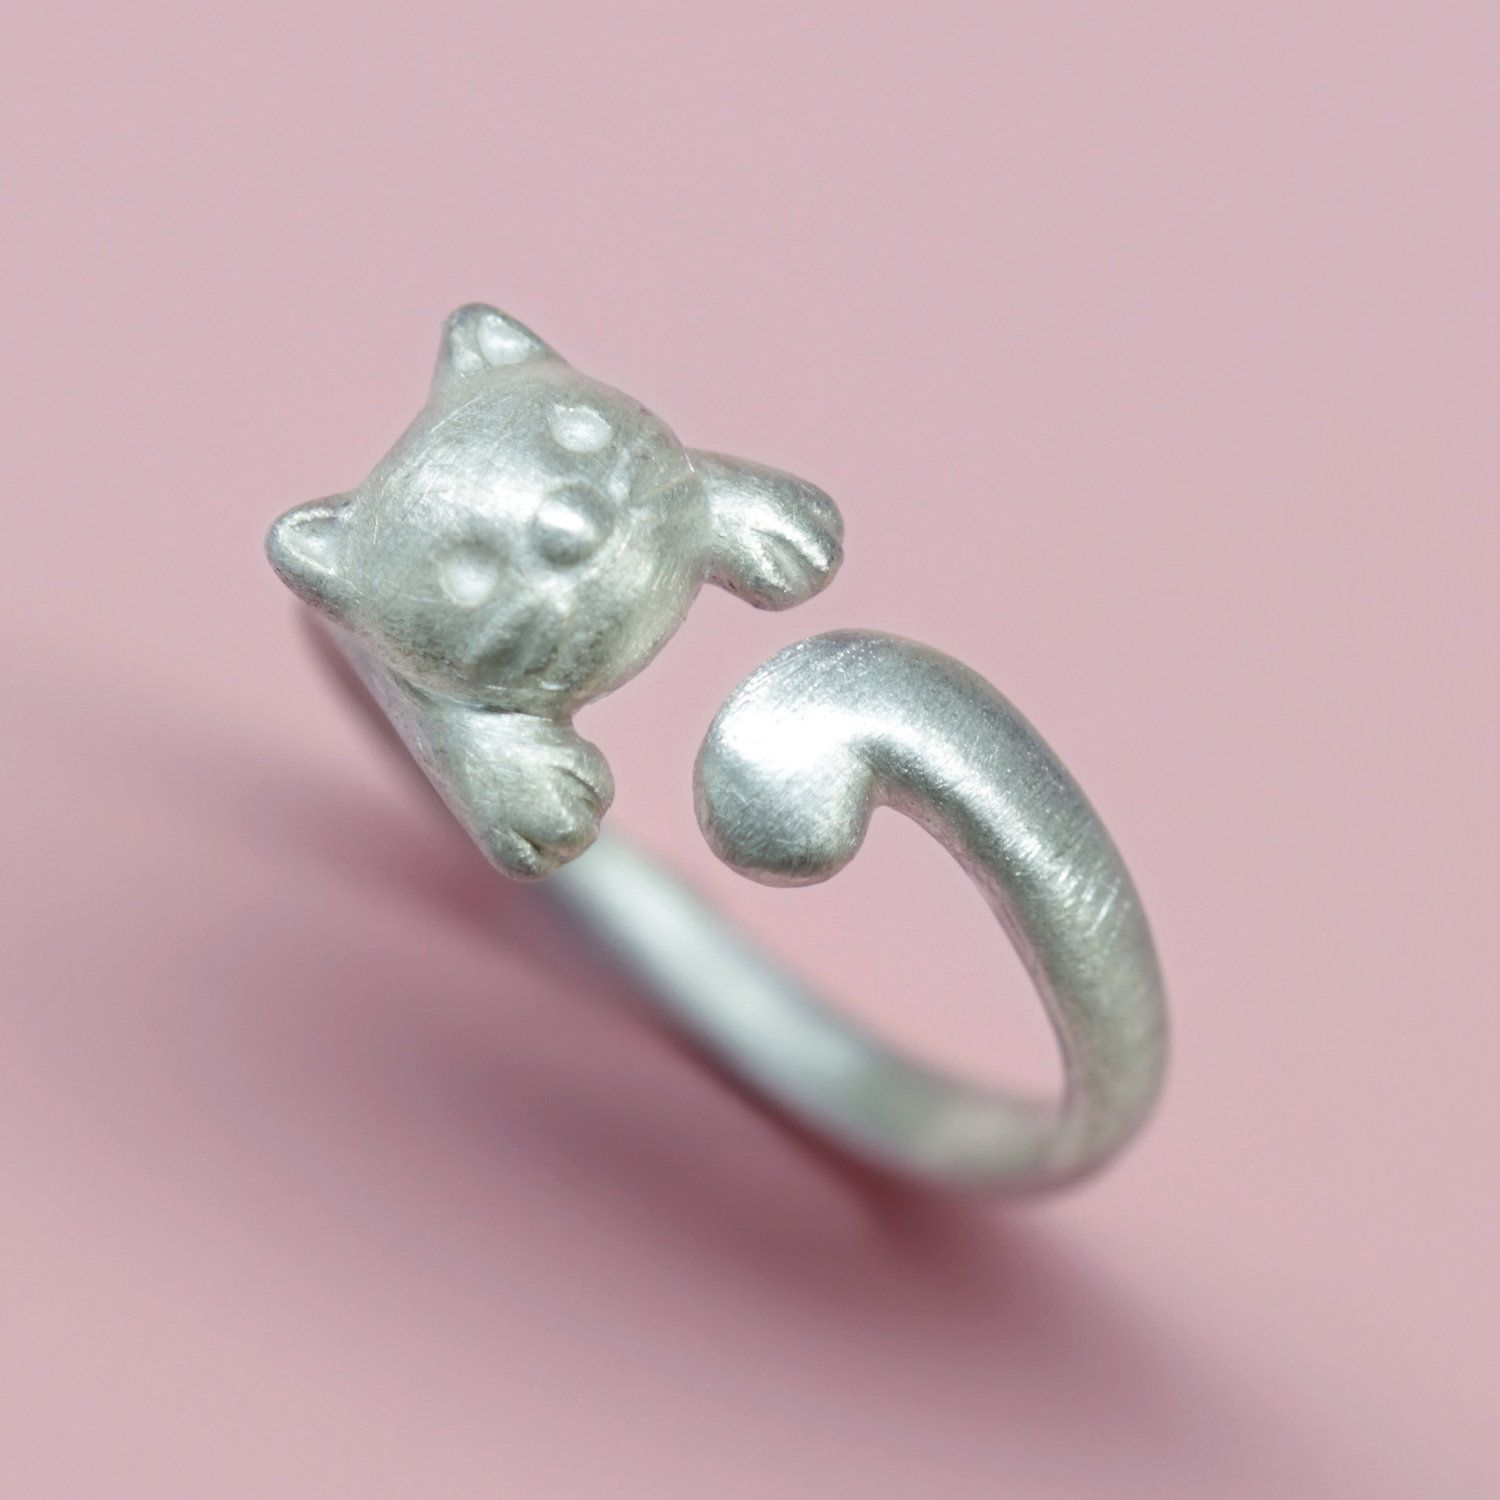 Handmade cat animal jewelry Adjustable cat ring with cat/'s head and tail. Sterling ring